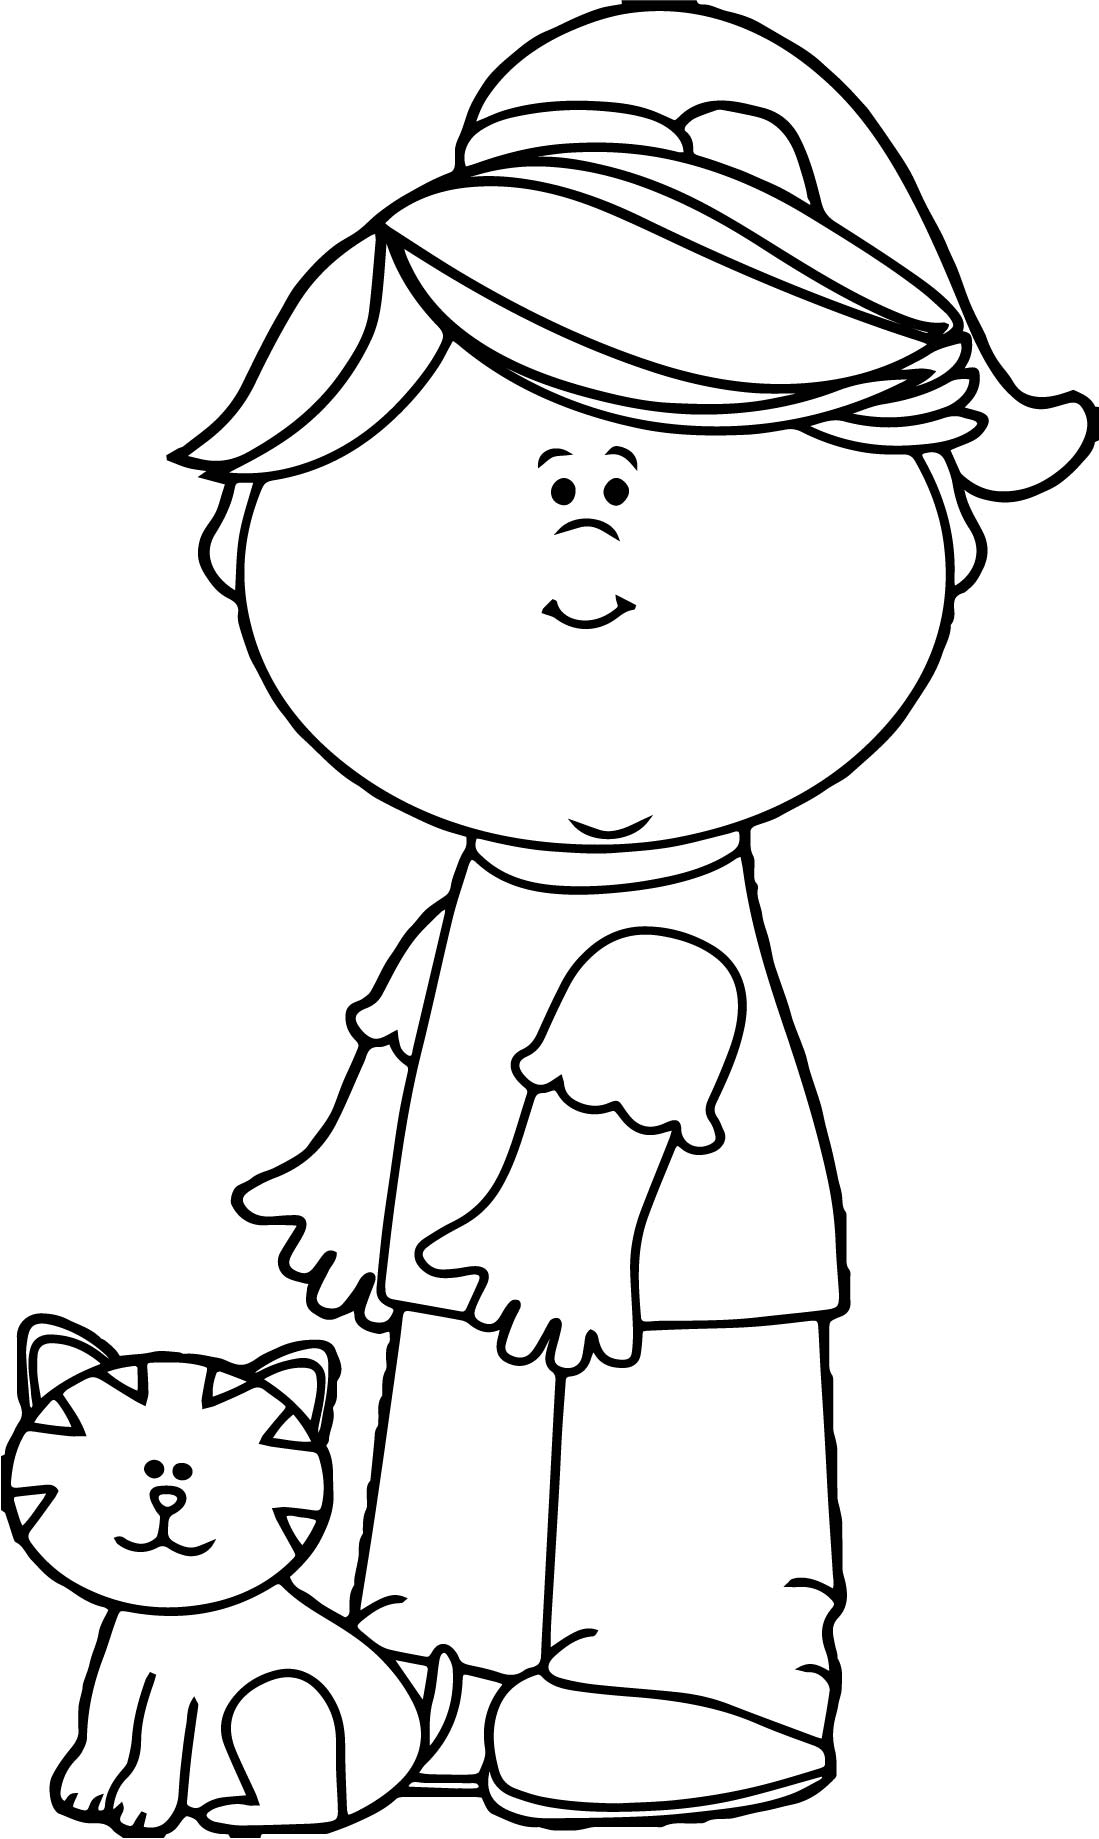 Girl With Cat Coloring Page Wecoloringpage Com